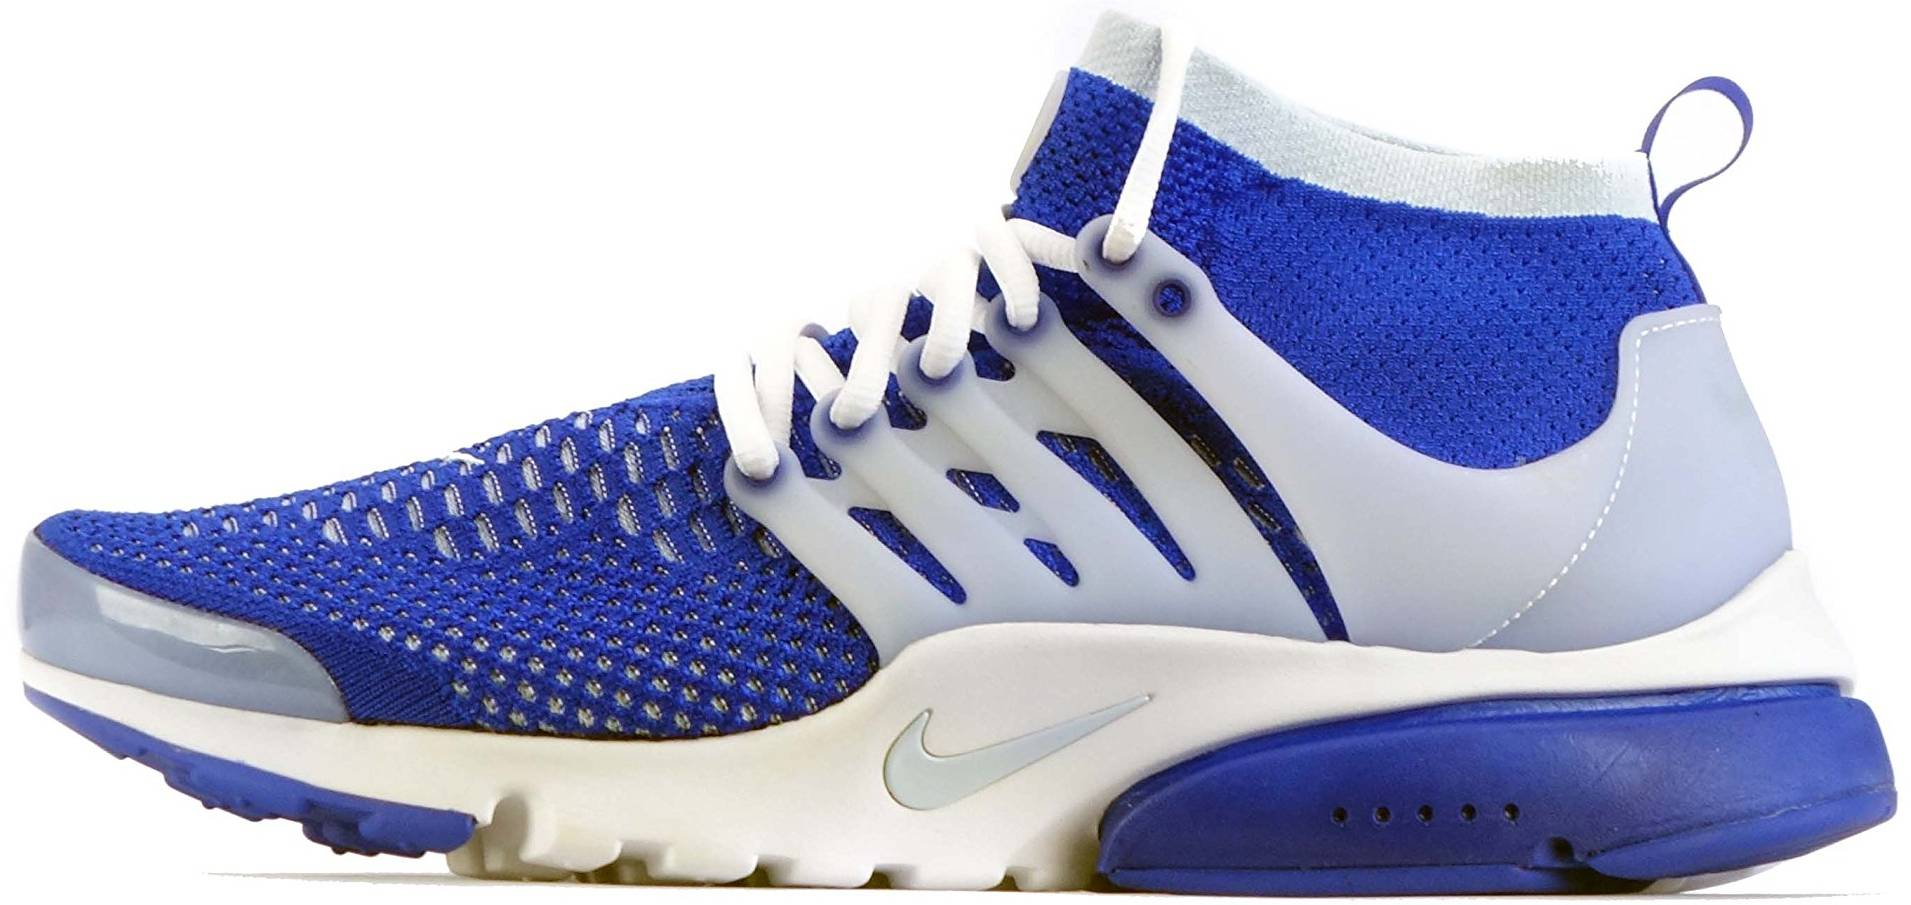 12 Reasons to/NOT to Buy Nike Air Presto Ultra Flyknit (Sep 2021 ...